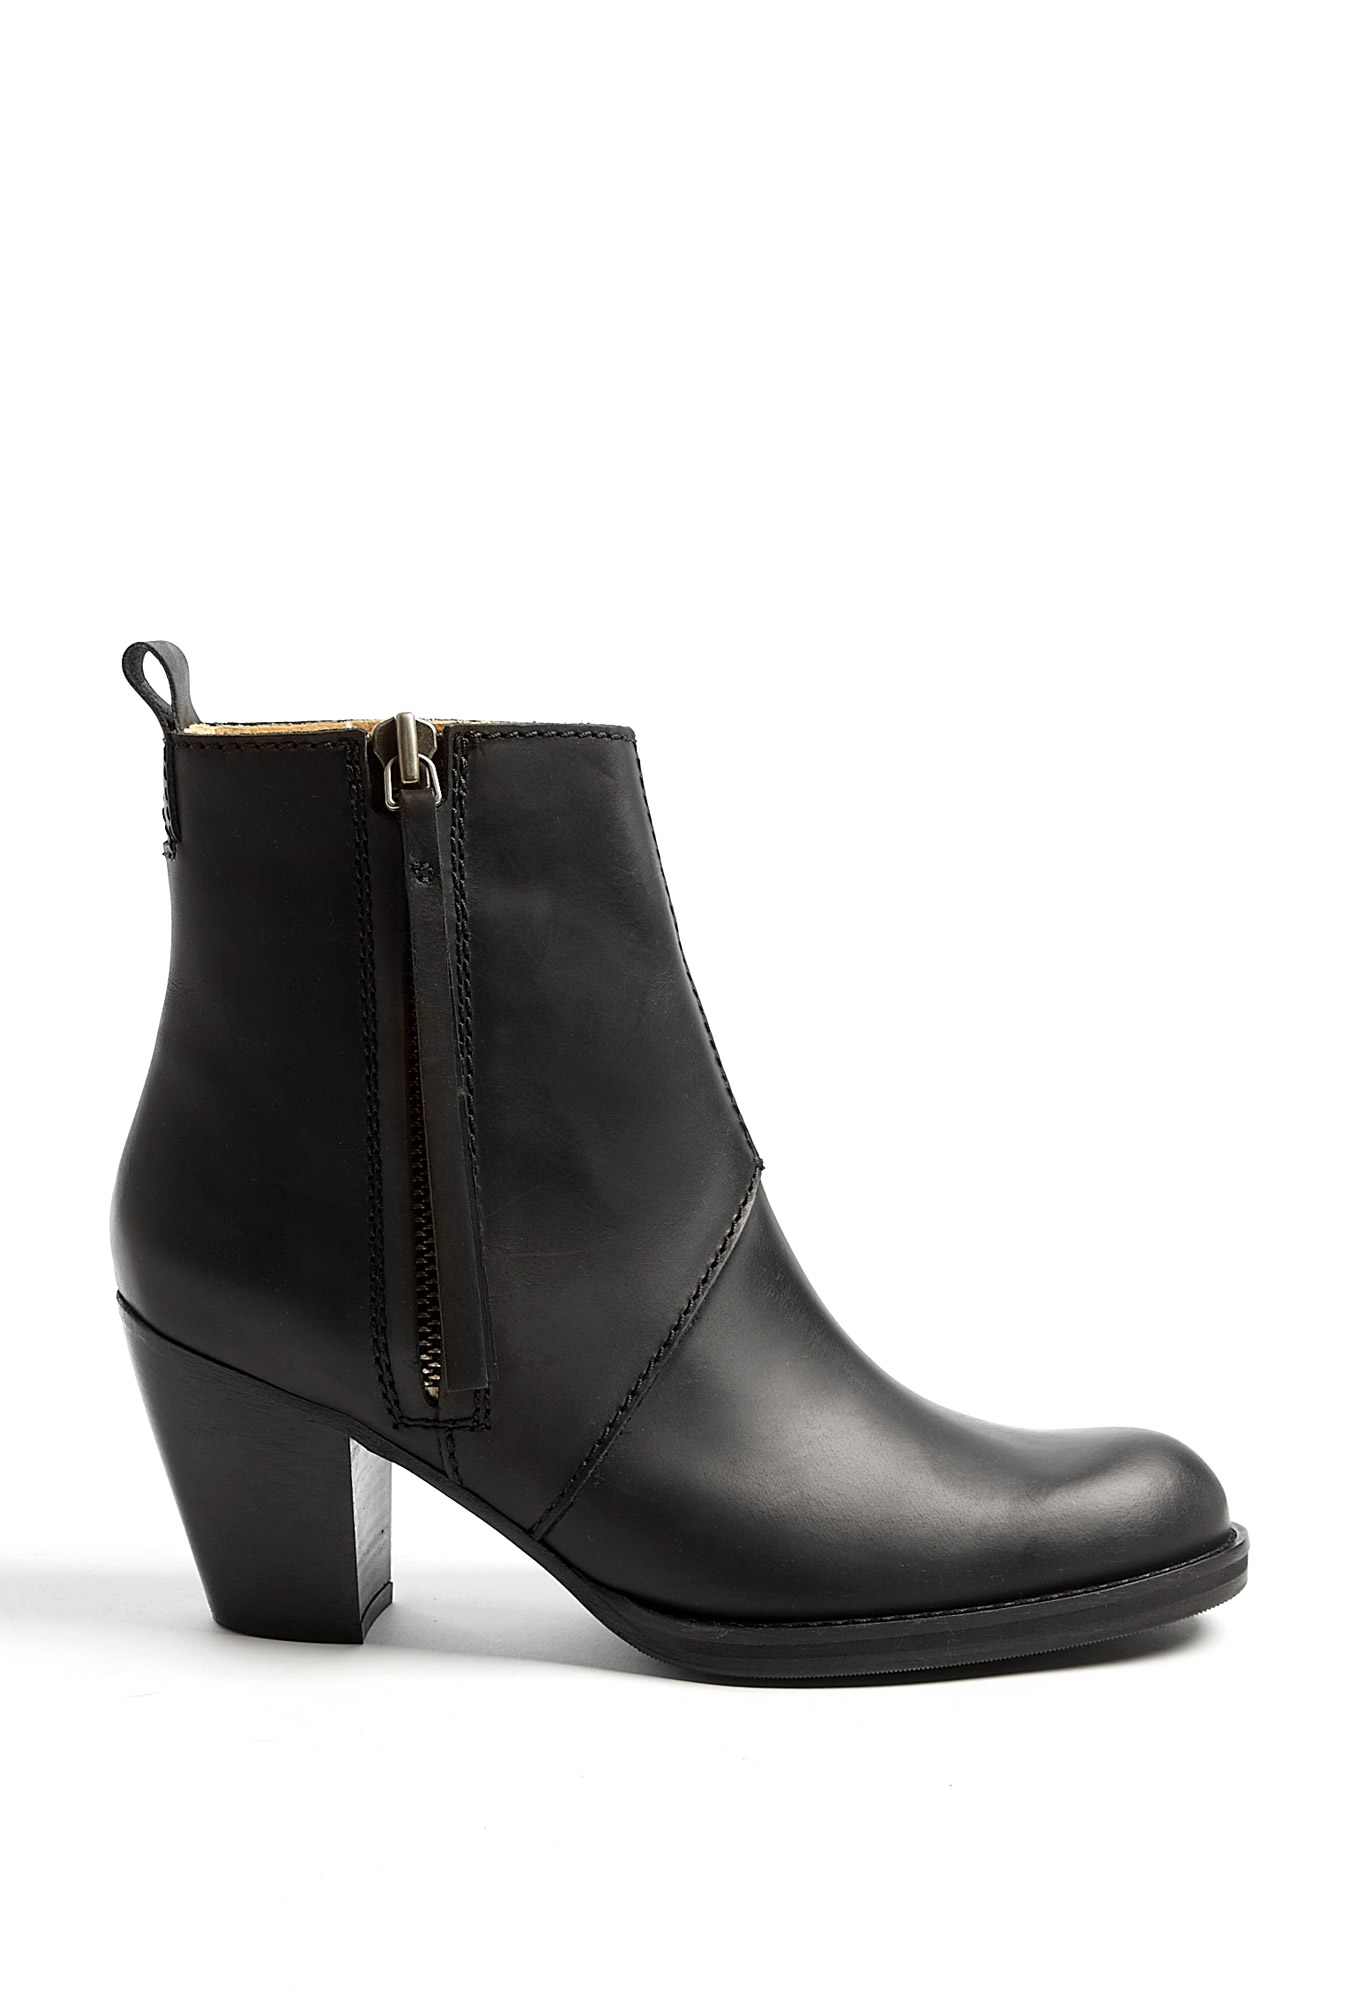 acne black pistol ankle boot by acne. Black Bedroom Furniture Sets. Home Design Ideas